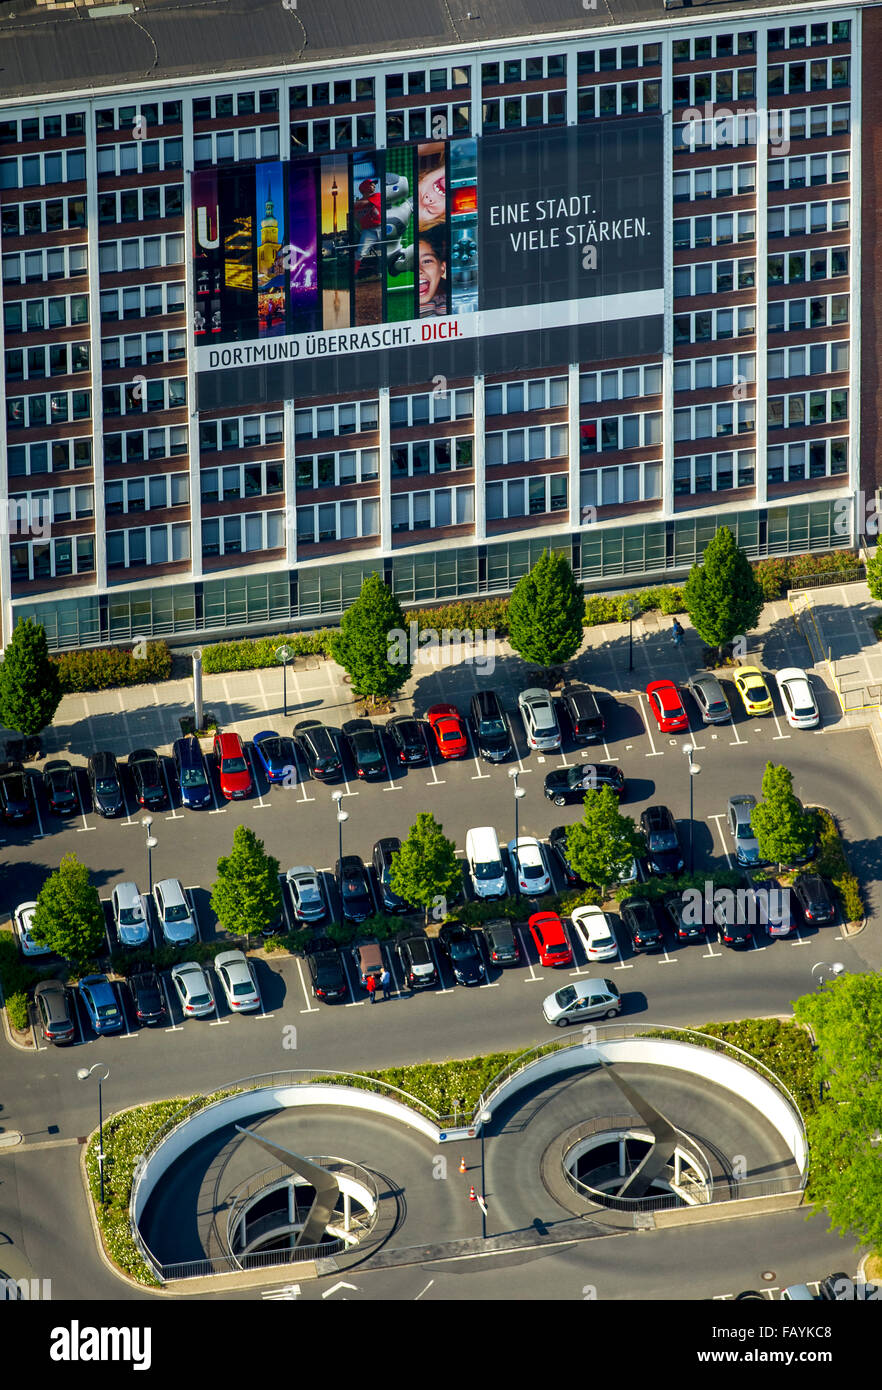 Aerial view, poster 'One city - many strengths' Dortmund surprises you, City Council Office for Housing - Stock Image